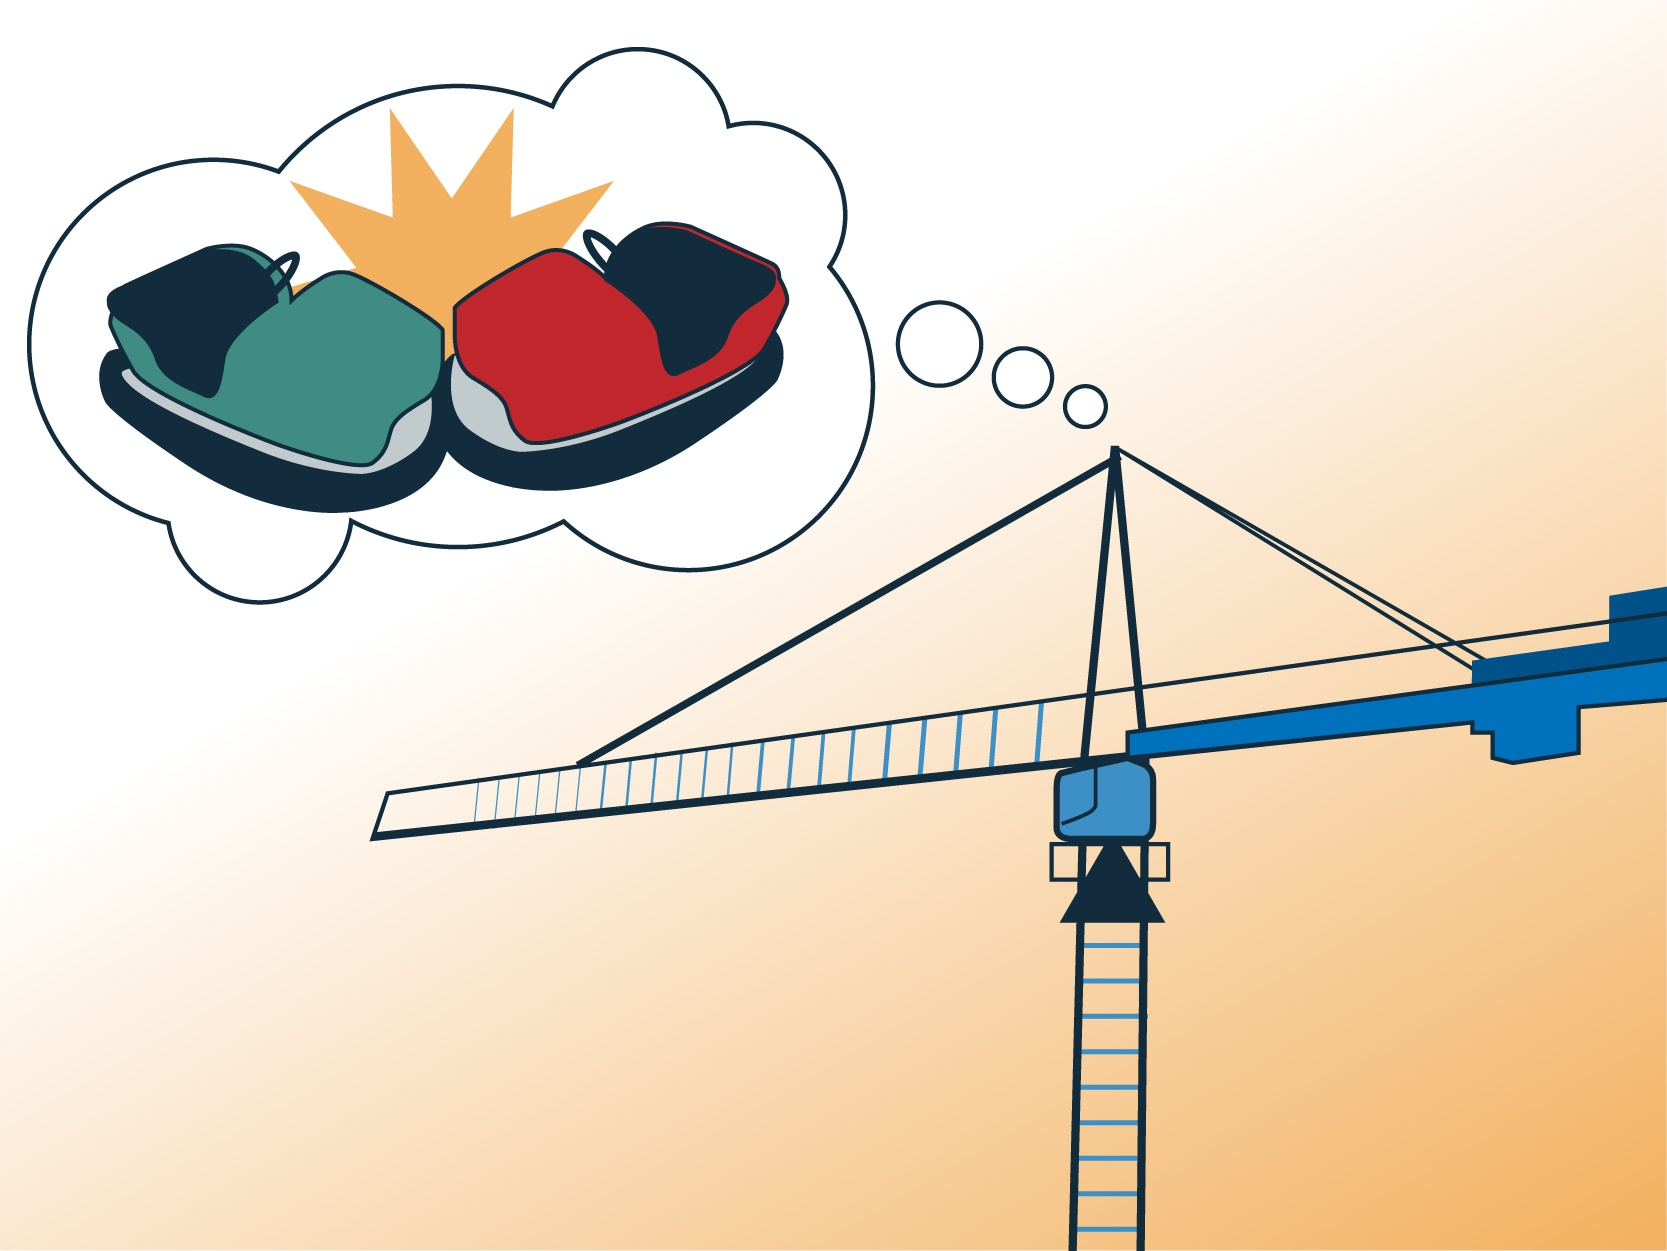 Overhead cranes, trolleys and monorails are not bumper cars